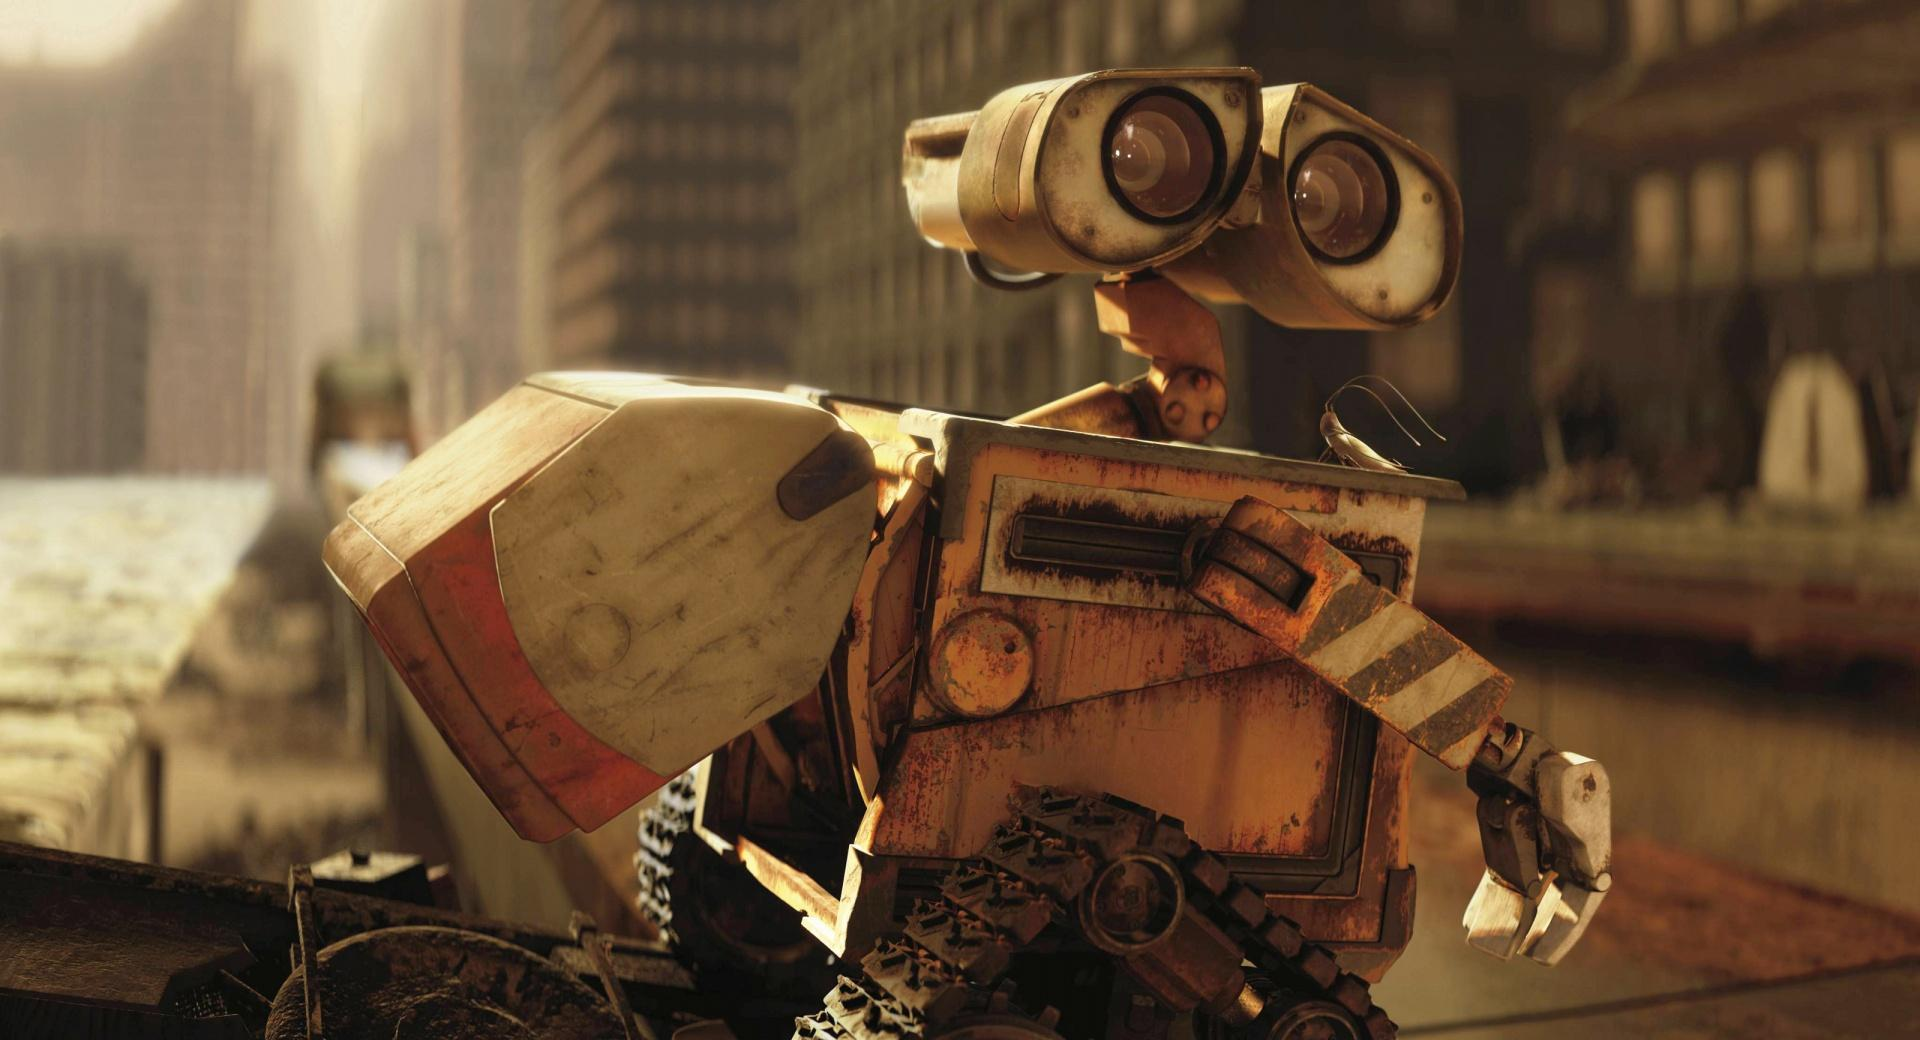 Wall-E In The City wallpapers HD quality